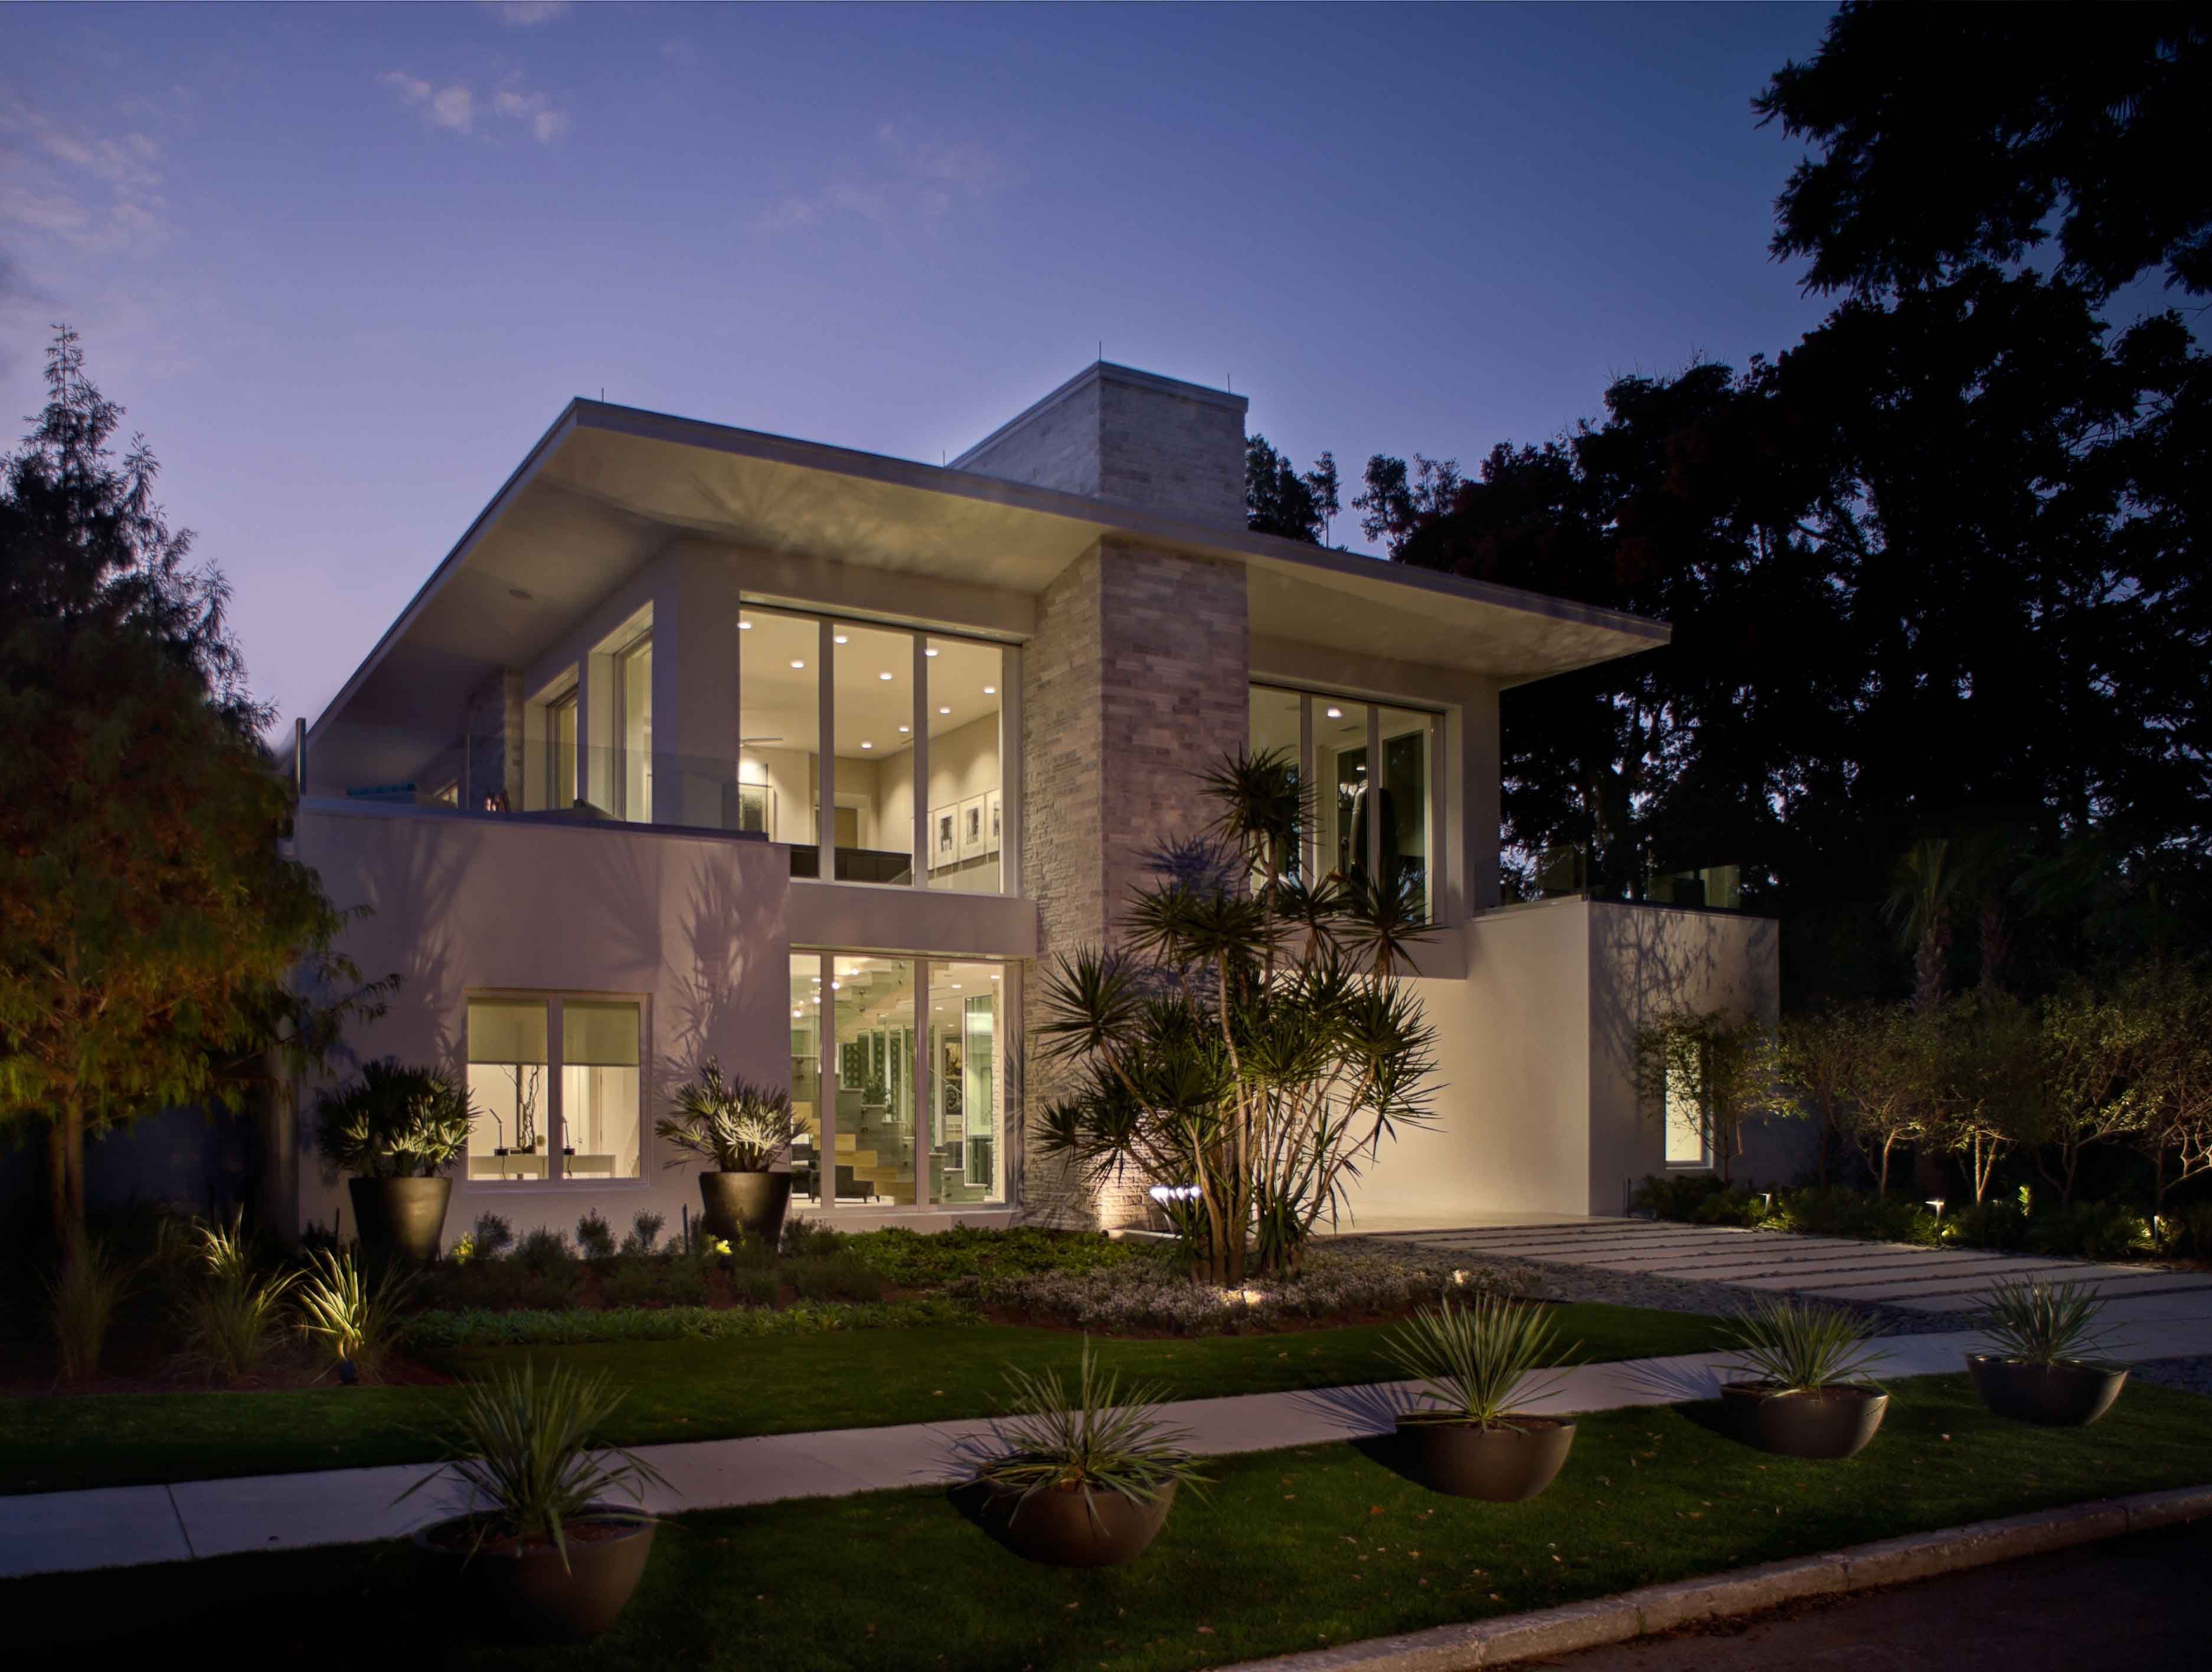 Front Elevation Of The New American Home By Phil Kean Designs